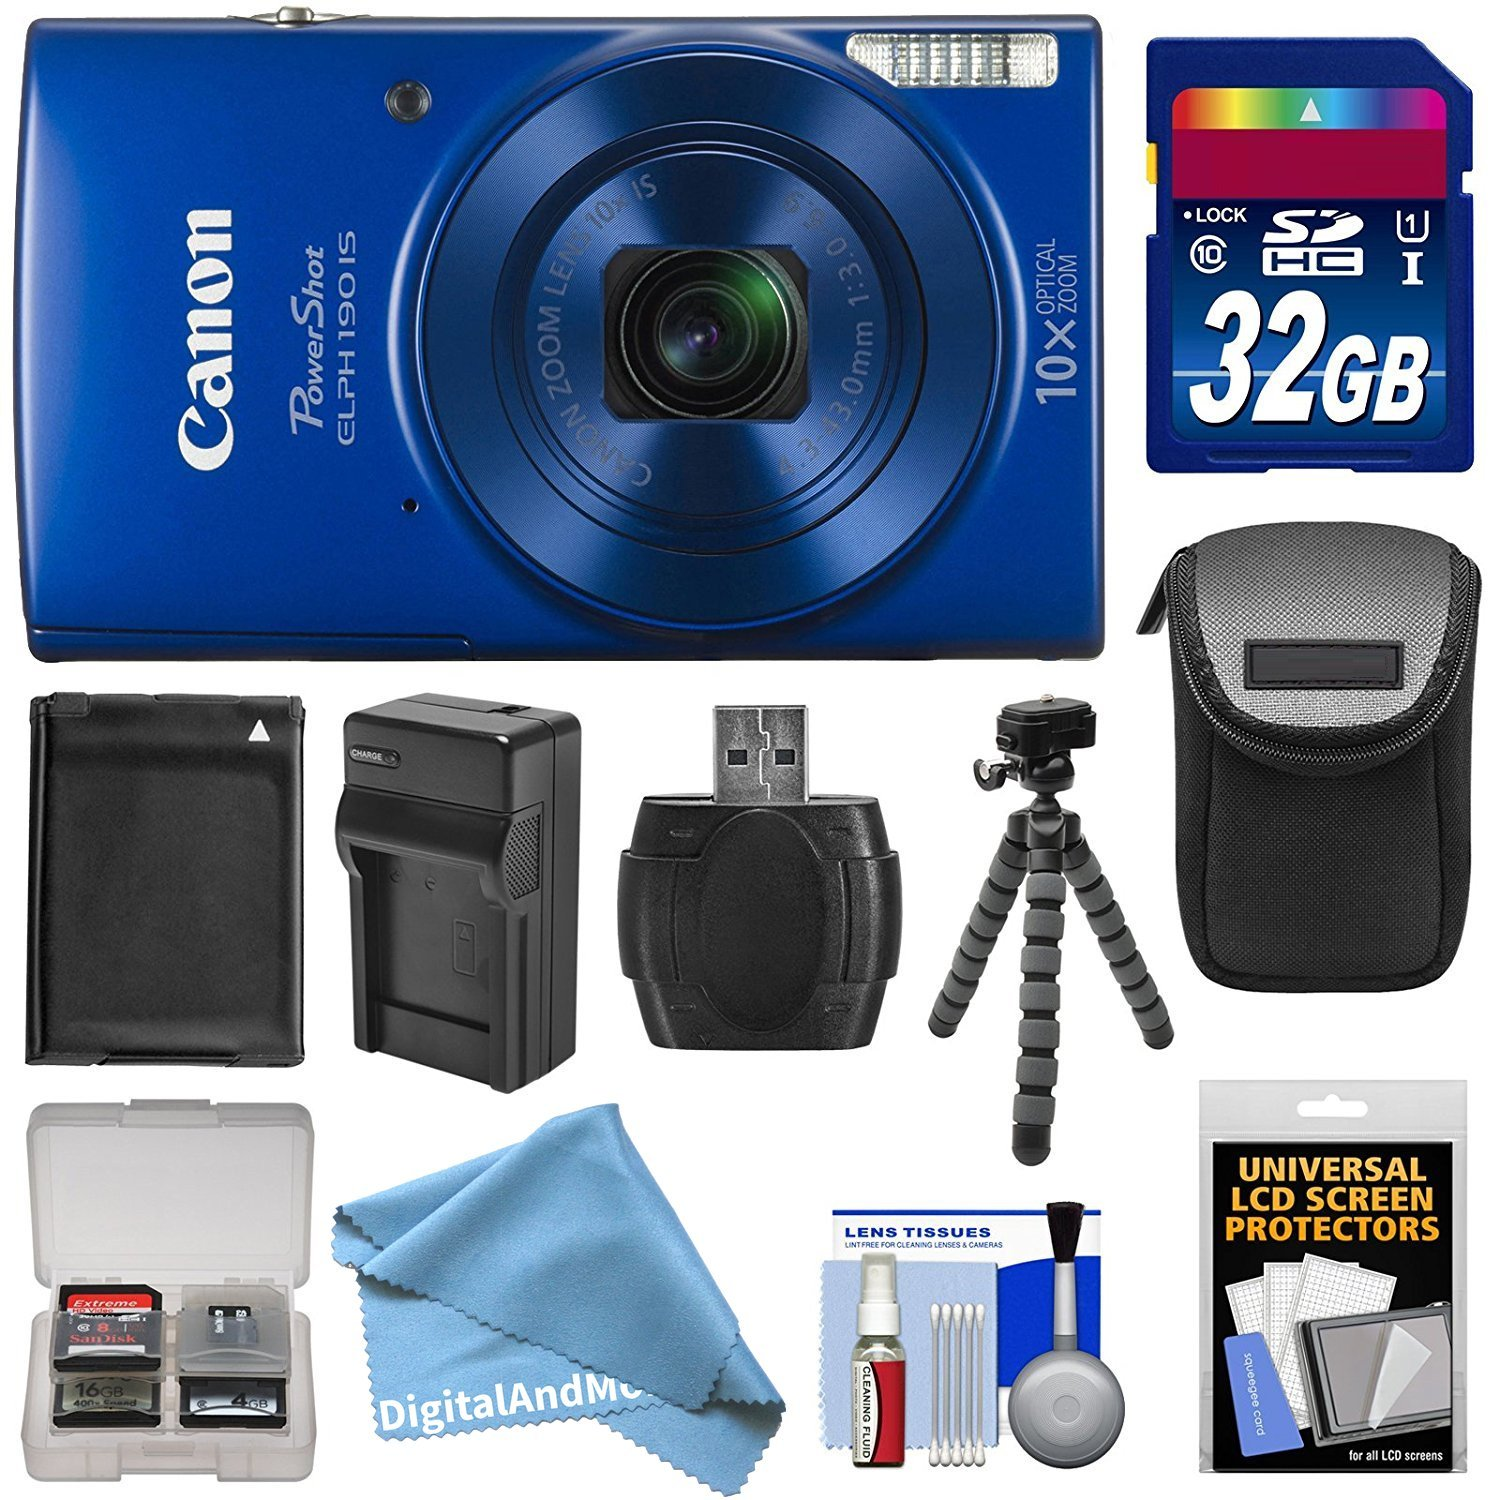 Canon PowerShot Elph 190 IS Wi-Fi Digital Camera (Blue) with 32GB Card + Case + Battery & Charger + Flex Tripod + DigitalAndMore Kit